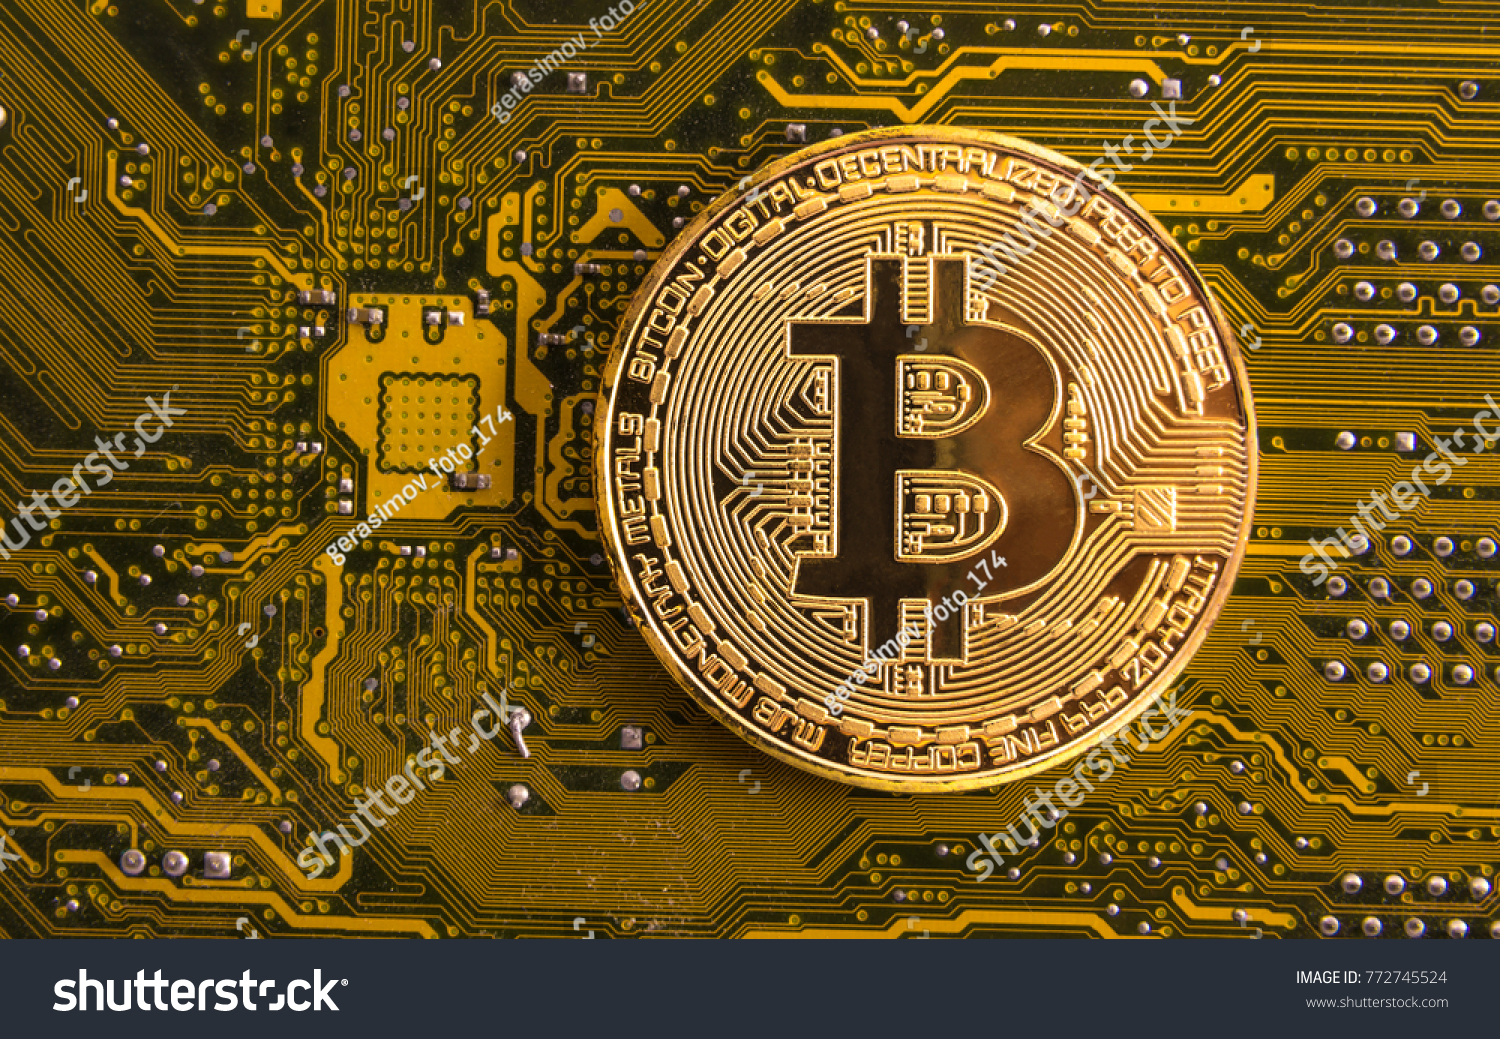 Bitcoin Concept Gold Coin Computer Circuit Stock Photo Edit Now Boards With Clock Hands Royalty Free Image Board Processor And Microchips Electronic